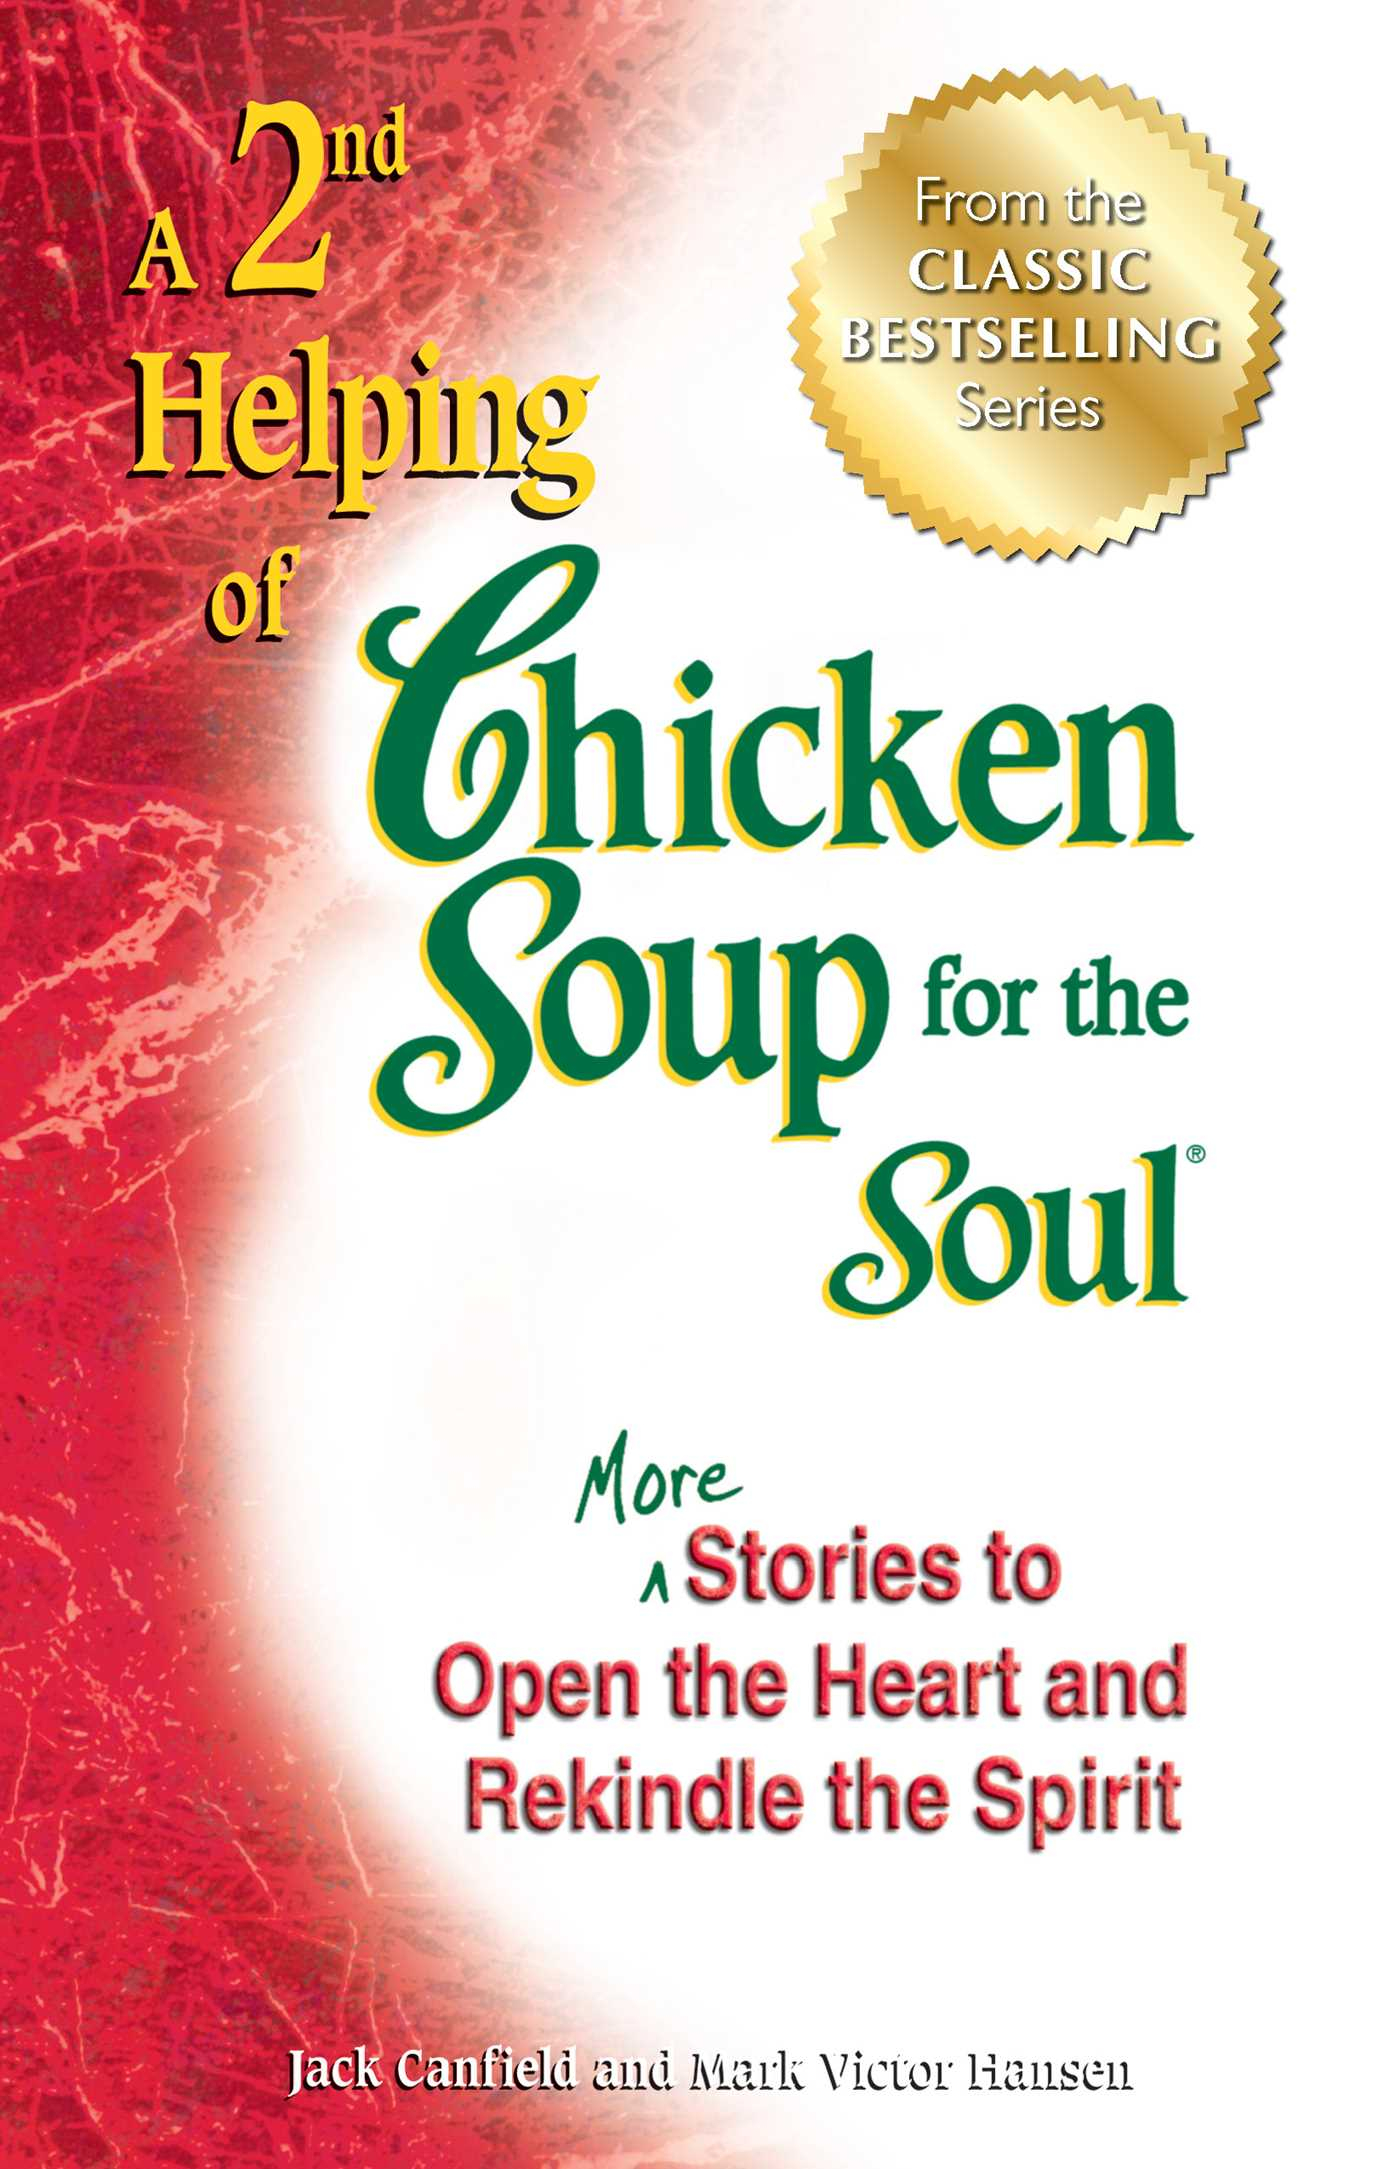 A 2nd Helping of Chicken Soup for the Soul  Book by Jack